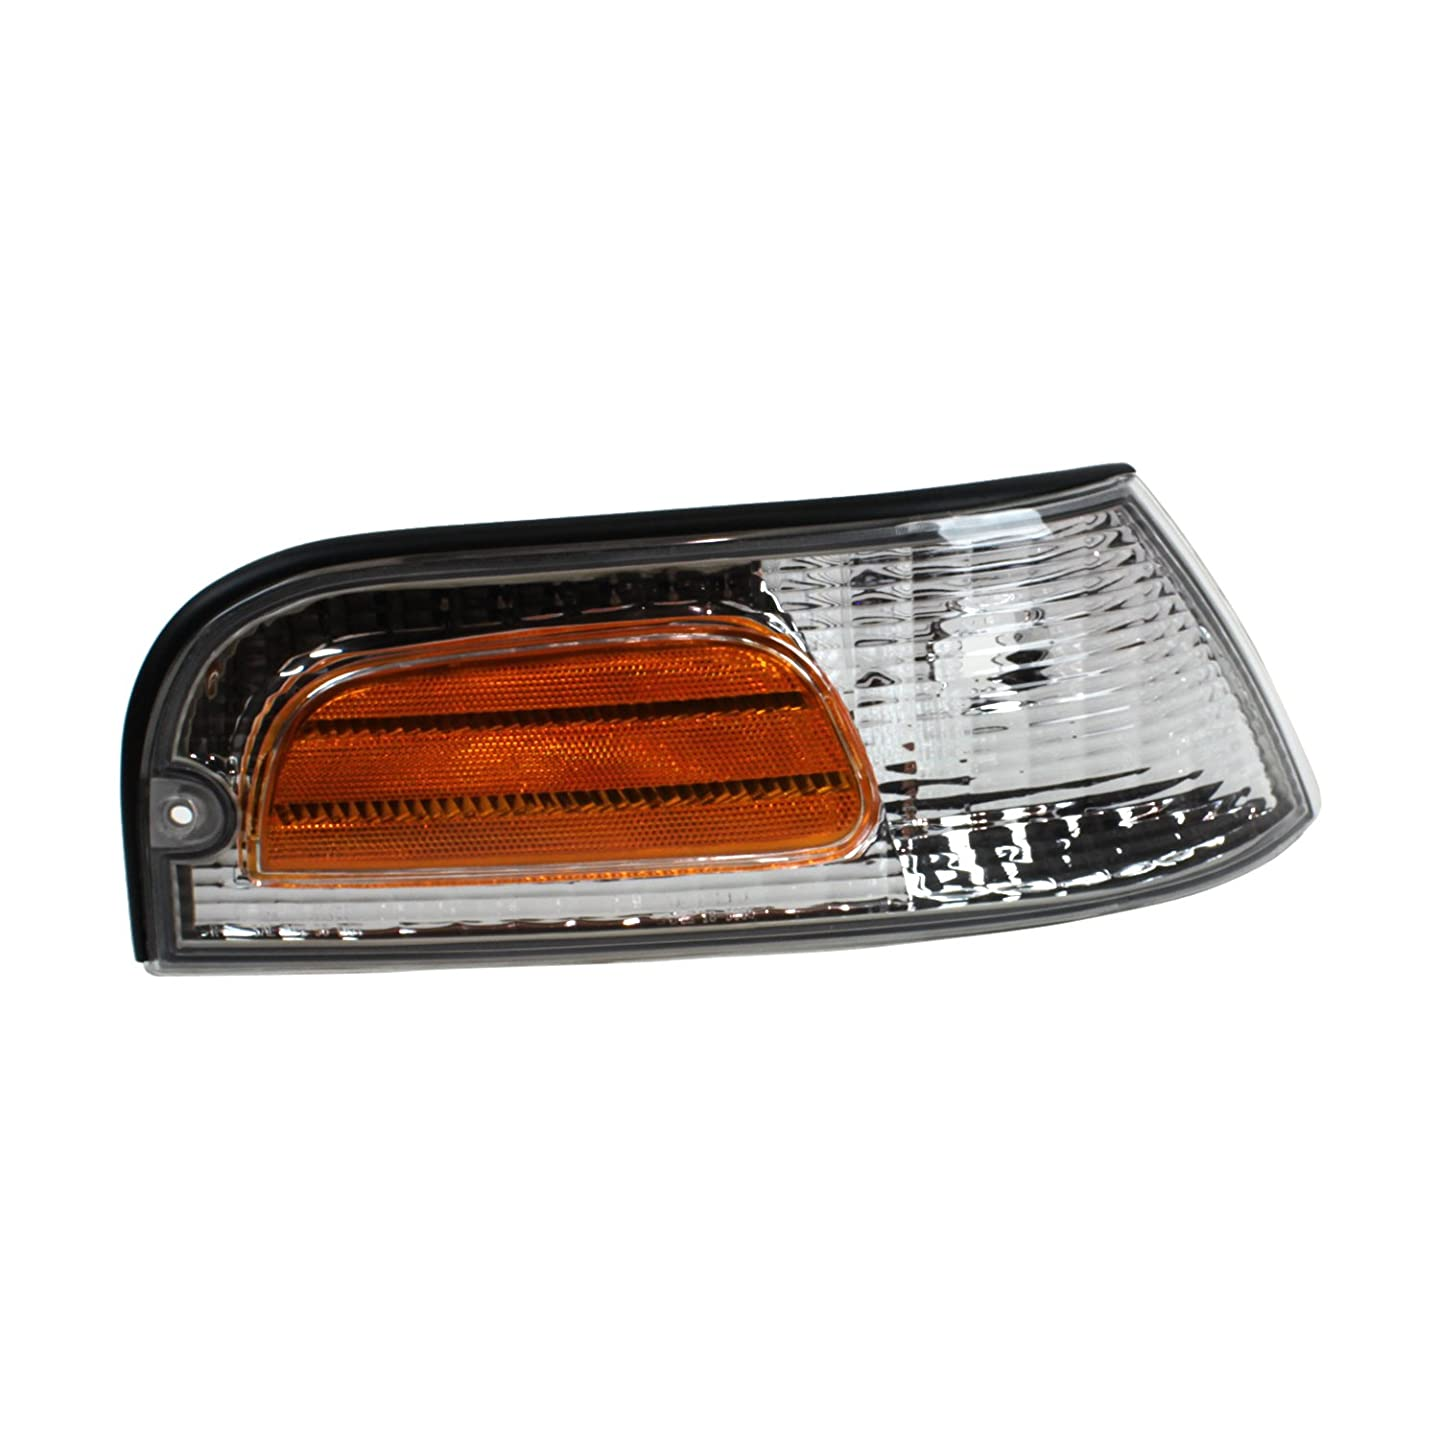 TYC 18-5095-01-1 Ford Crown Victoria Front Right Replacement Side Marker Light